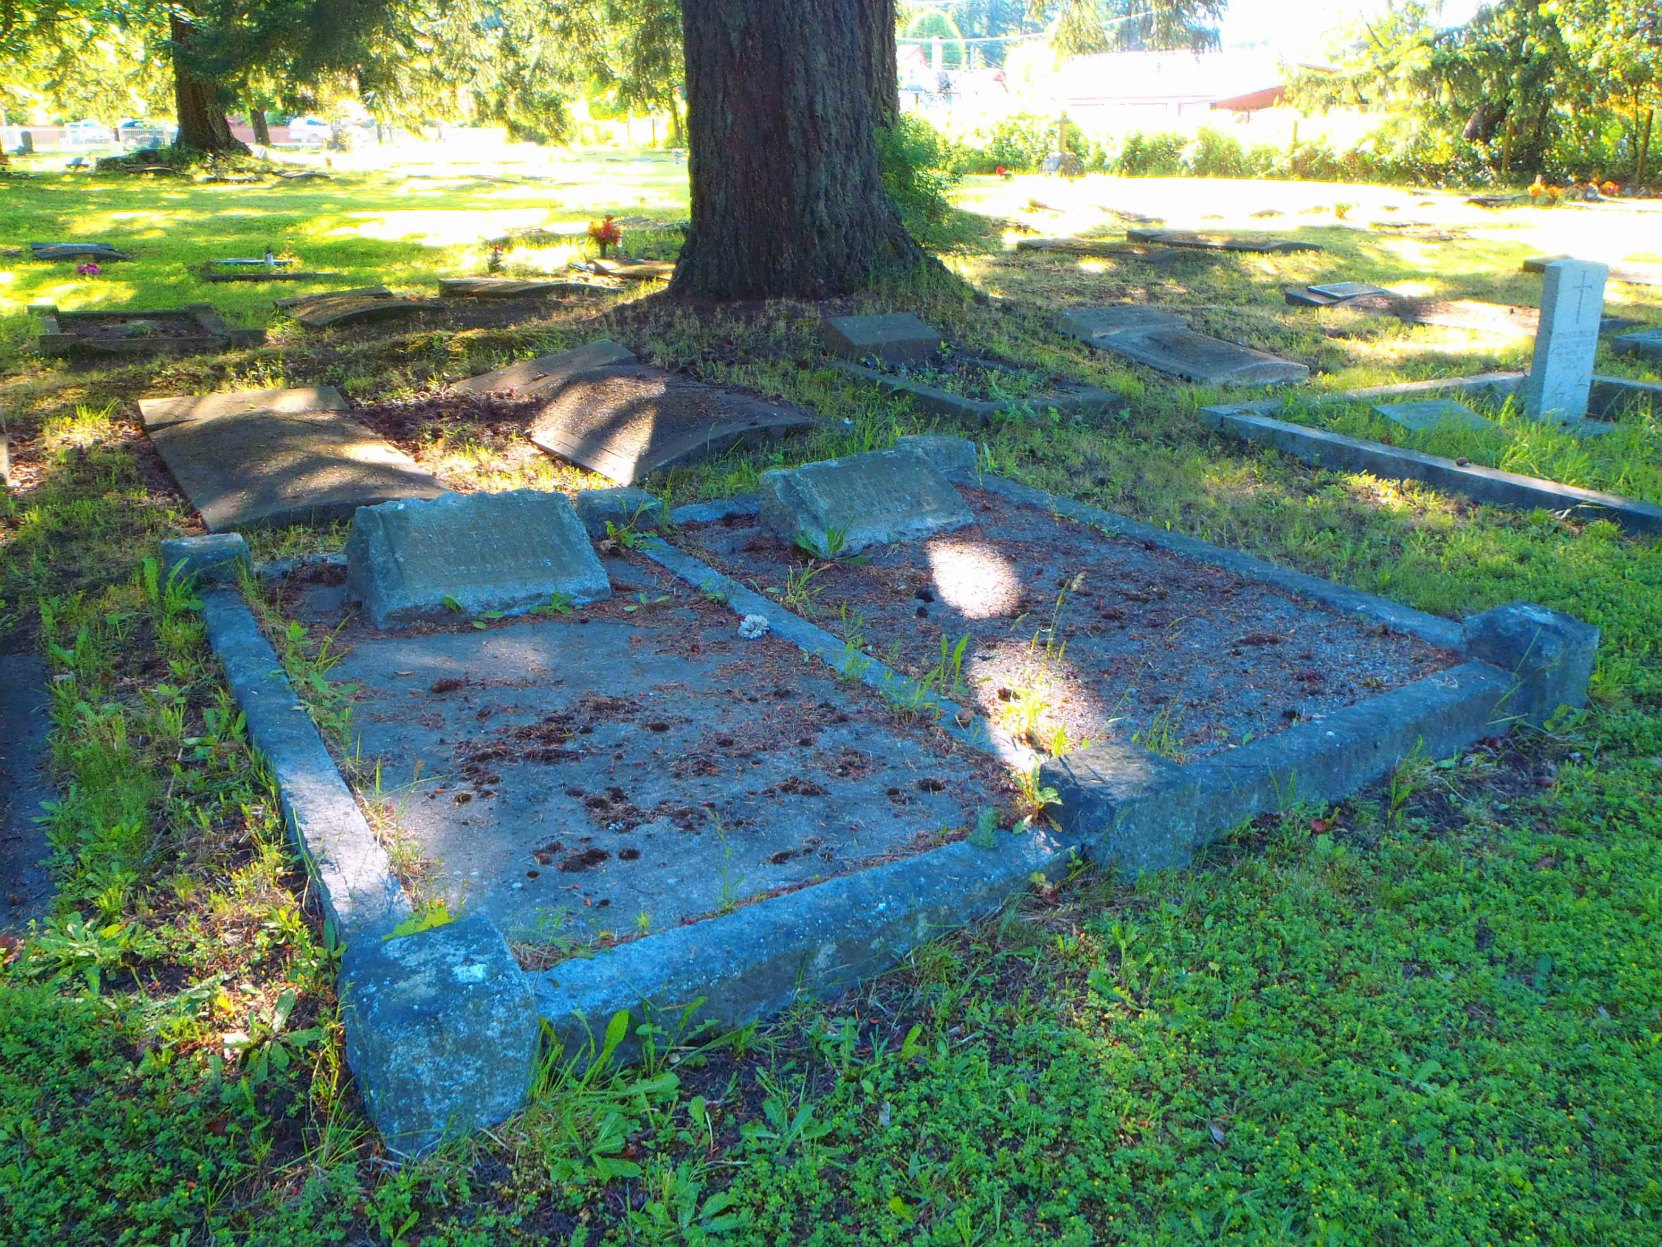 Joshua Freeman Marshall grave, Chemainus Cemetery, Chemainus, B.C. (photo by Temple Lodge No. 33 Historian)